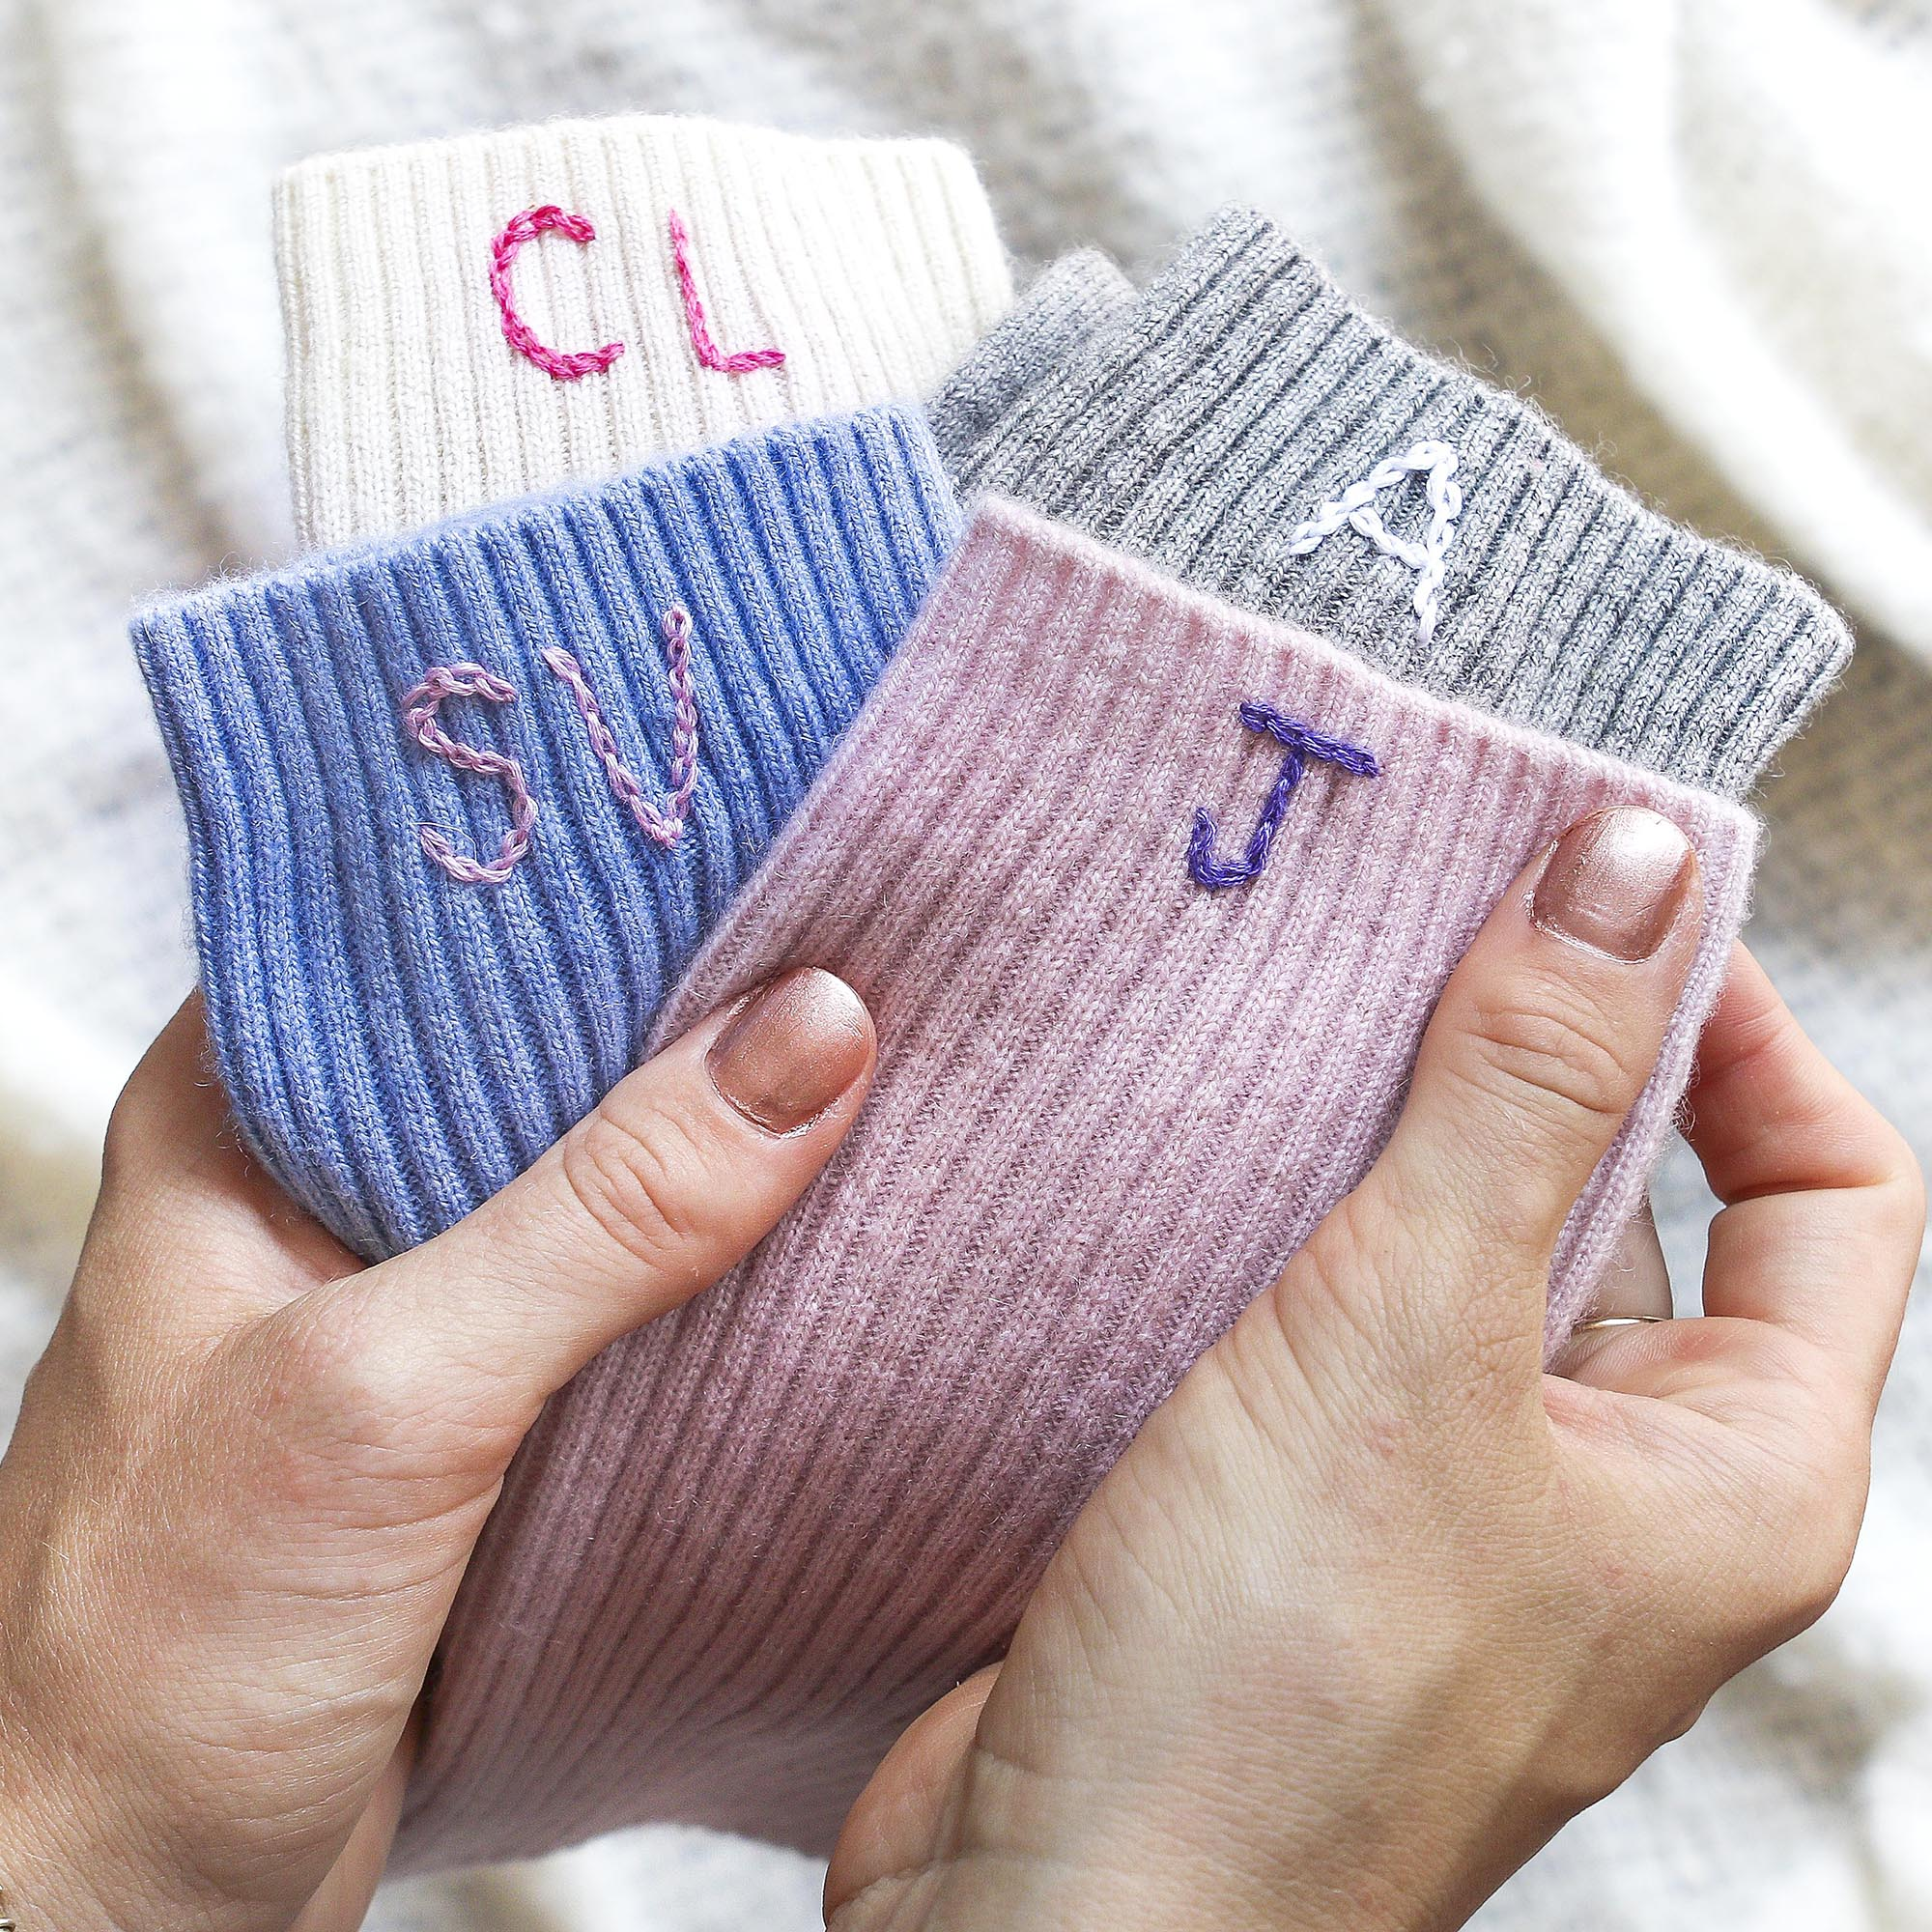 StephieAnn Cashmere Initialed bed socks